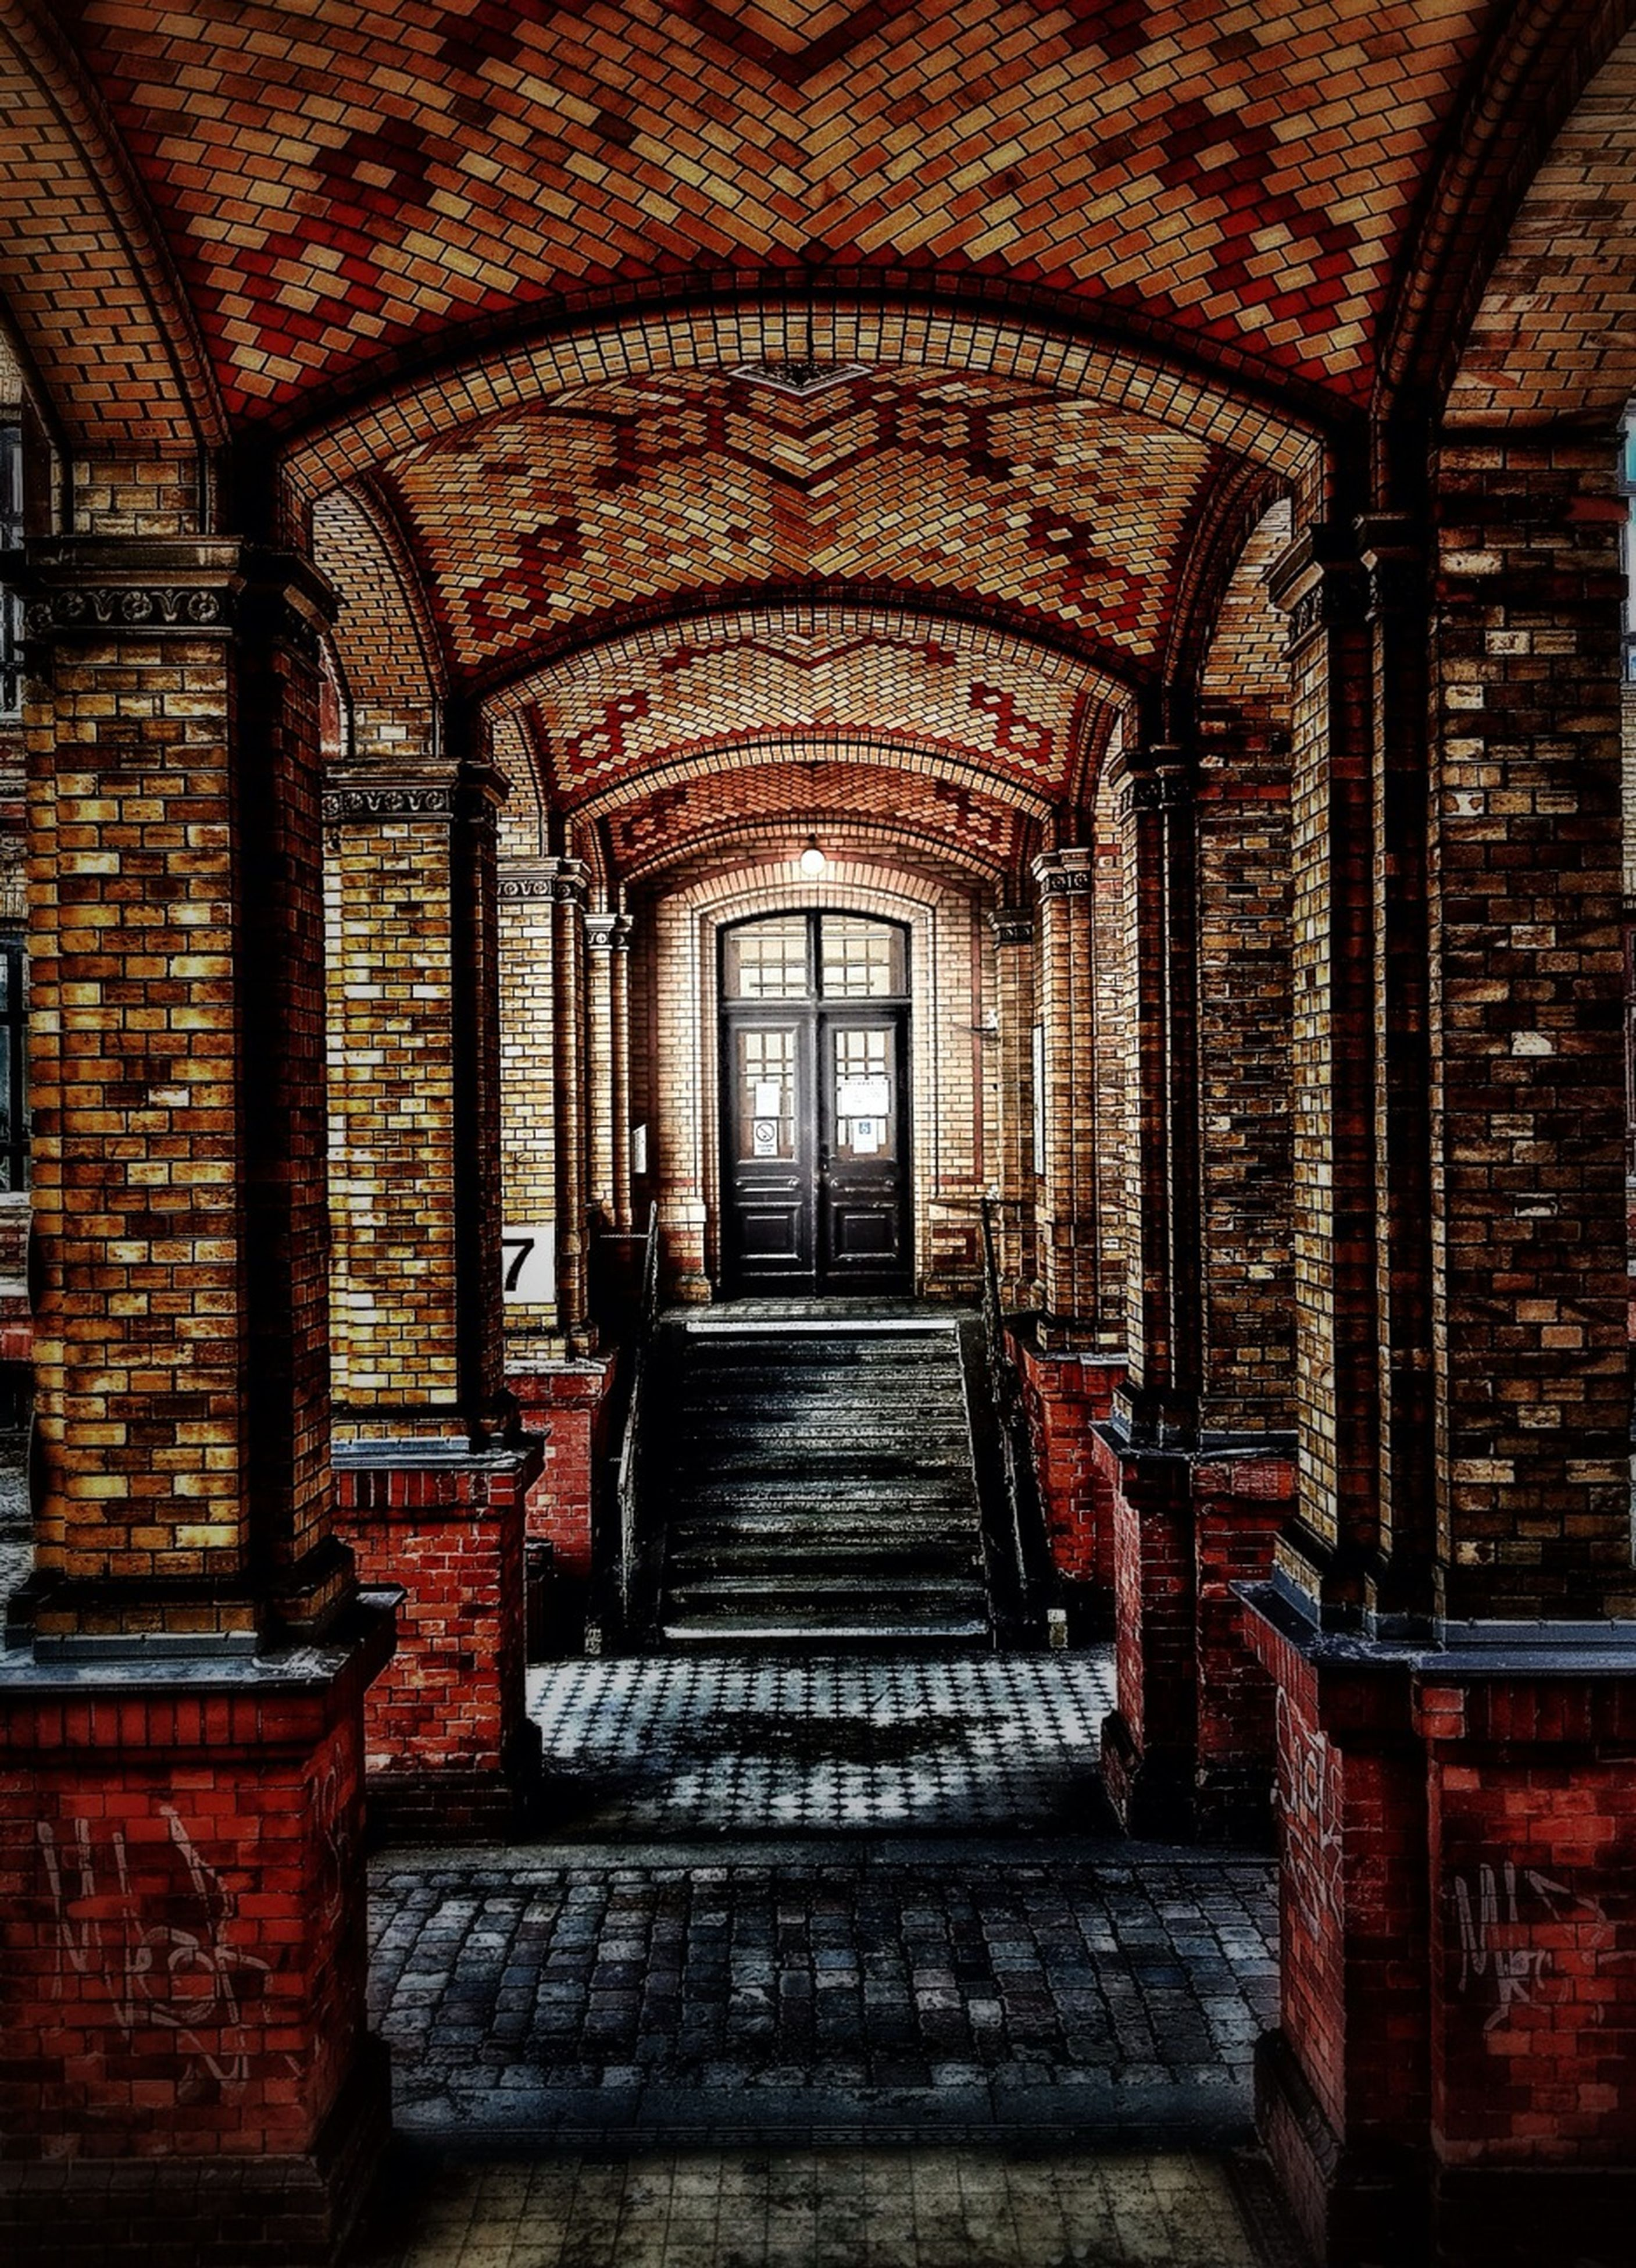 architecture, indoors, built structure, arch, steps, entrance, door, old, window, the way forward, house, building exterior, day, no people, brick wall, ceiling, closed, steps and staircases, staircase, history